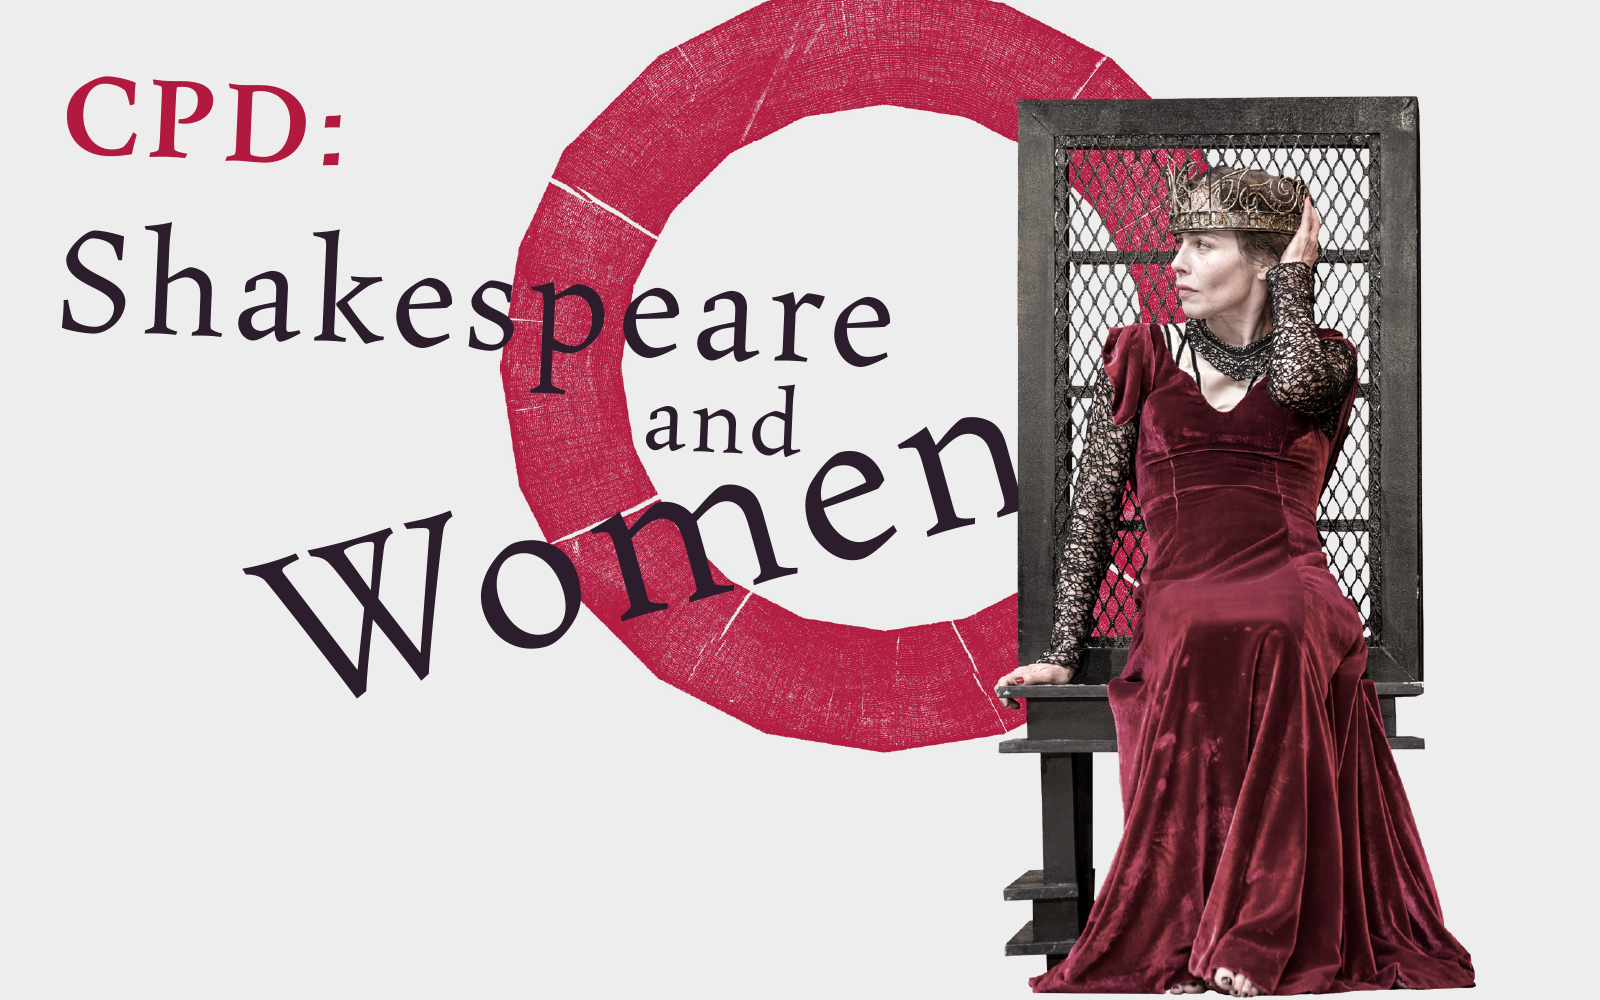 [IMAGE] An image of Lady Macbeth sat on a chair next to the words CPD: SHAKESPEARE AND WOMEN